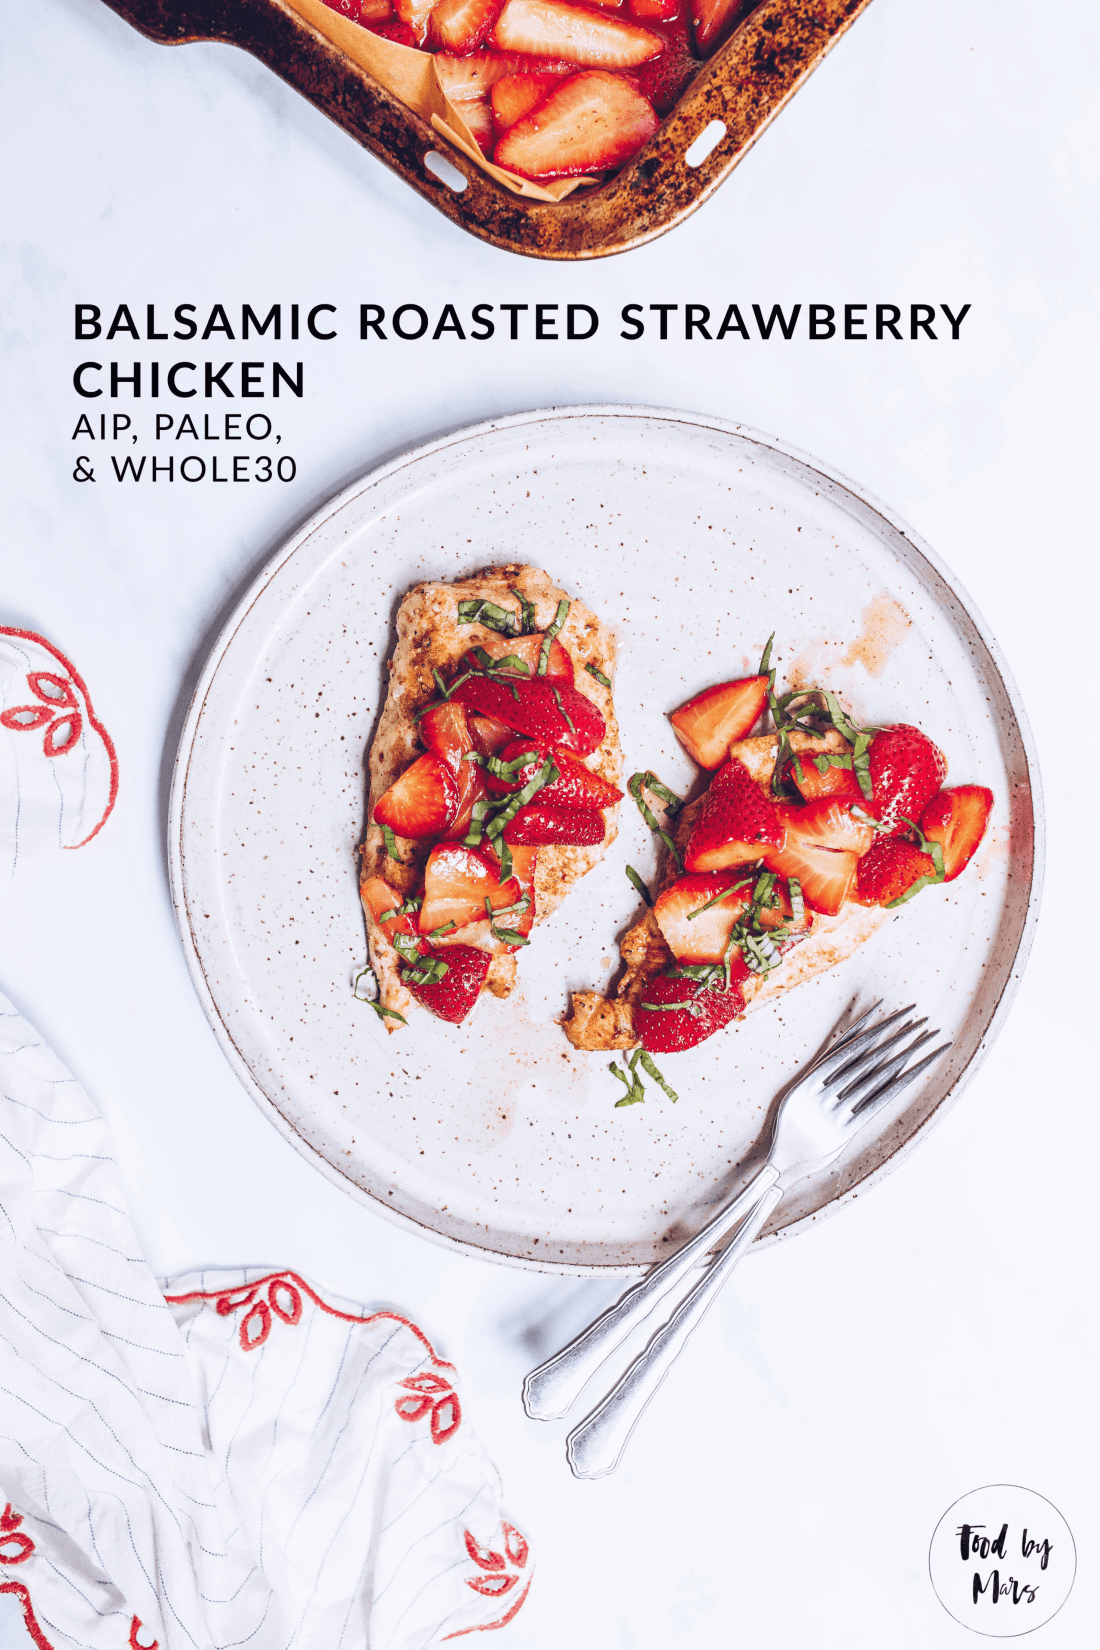 Balsamic Roasted Strawberry Chicken (AIP, Paleo, Whole30)